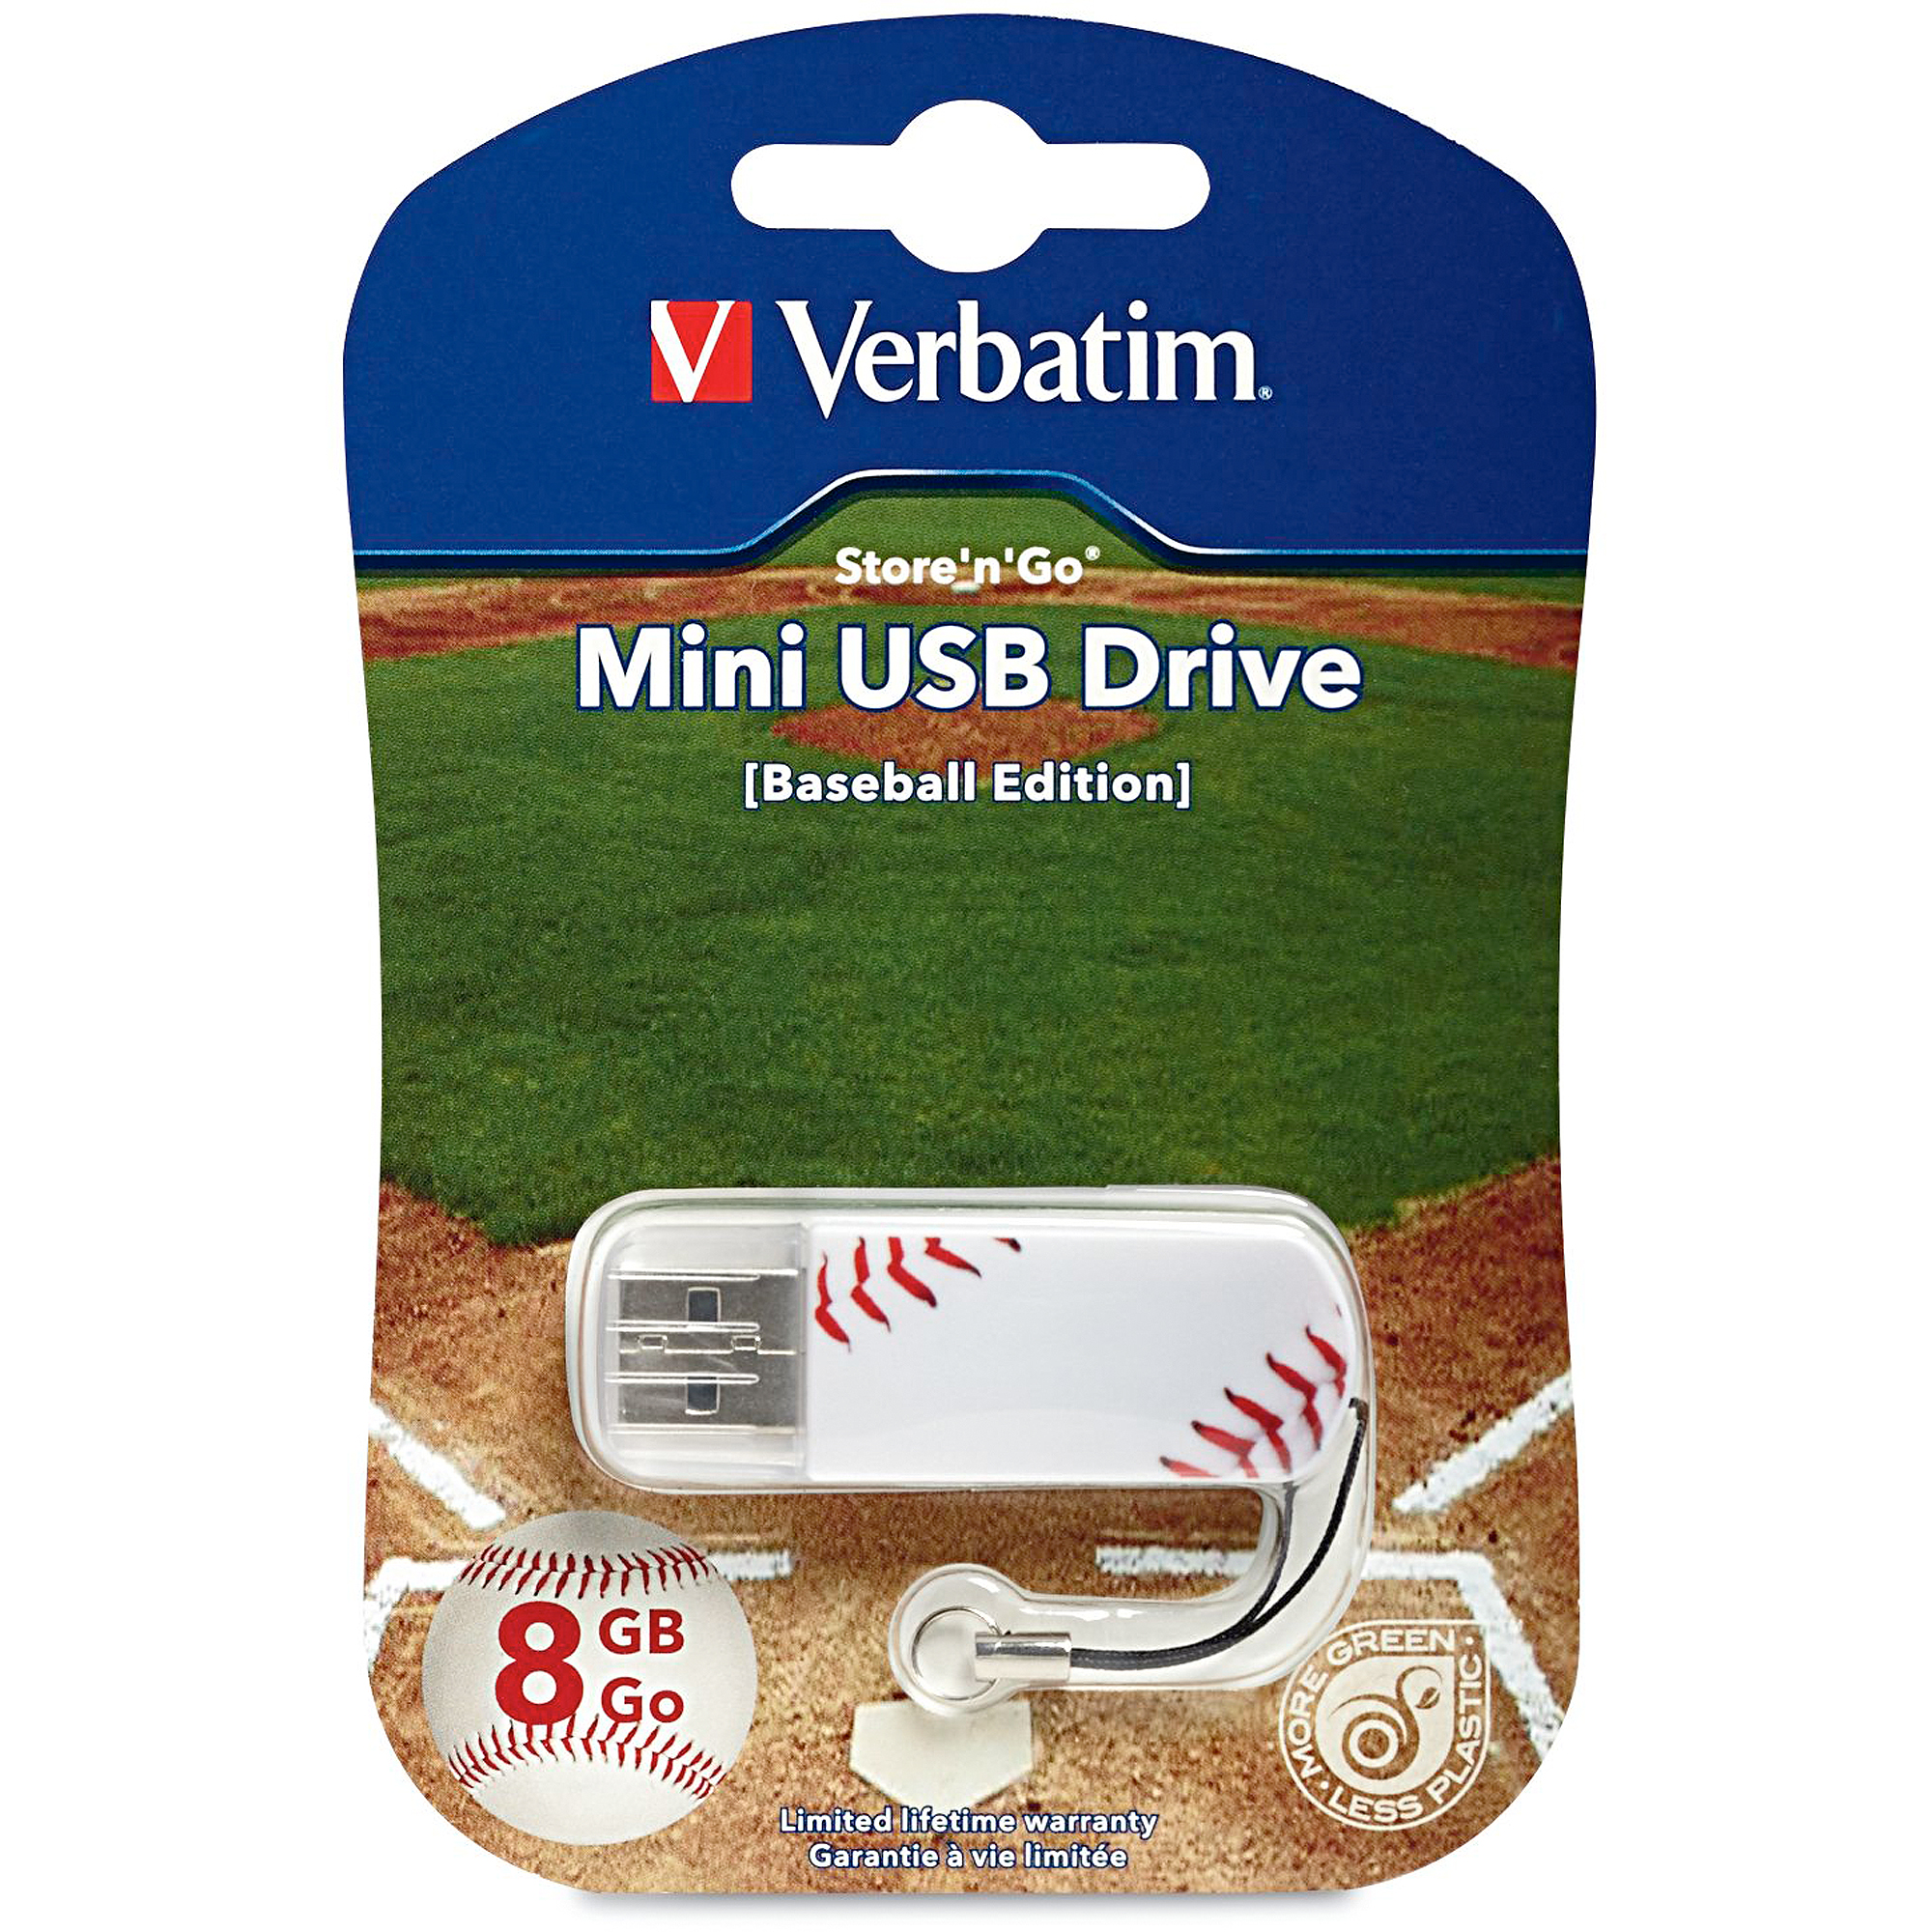 Verbatim 8 GB Store 'n' Go Sports Edition Mini USB Flash Drive, Baseball 98508